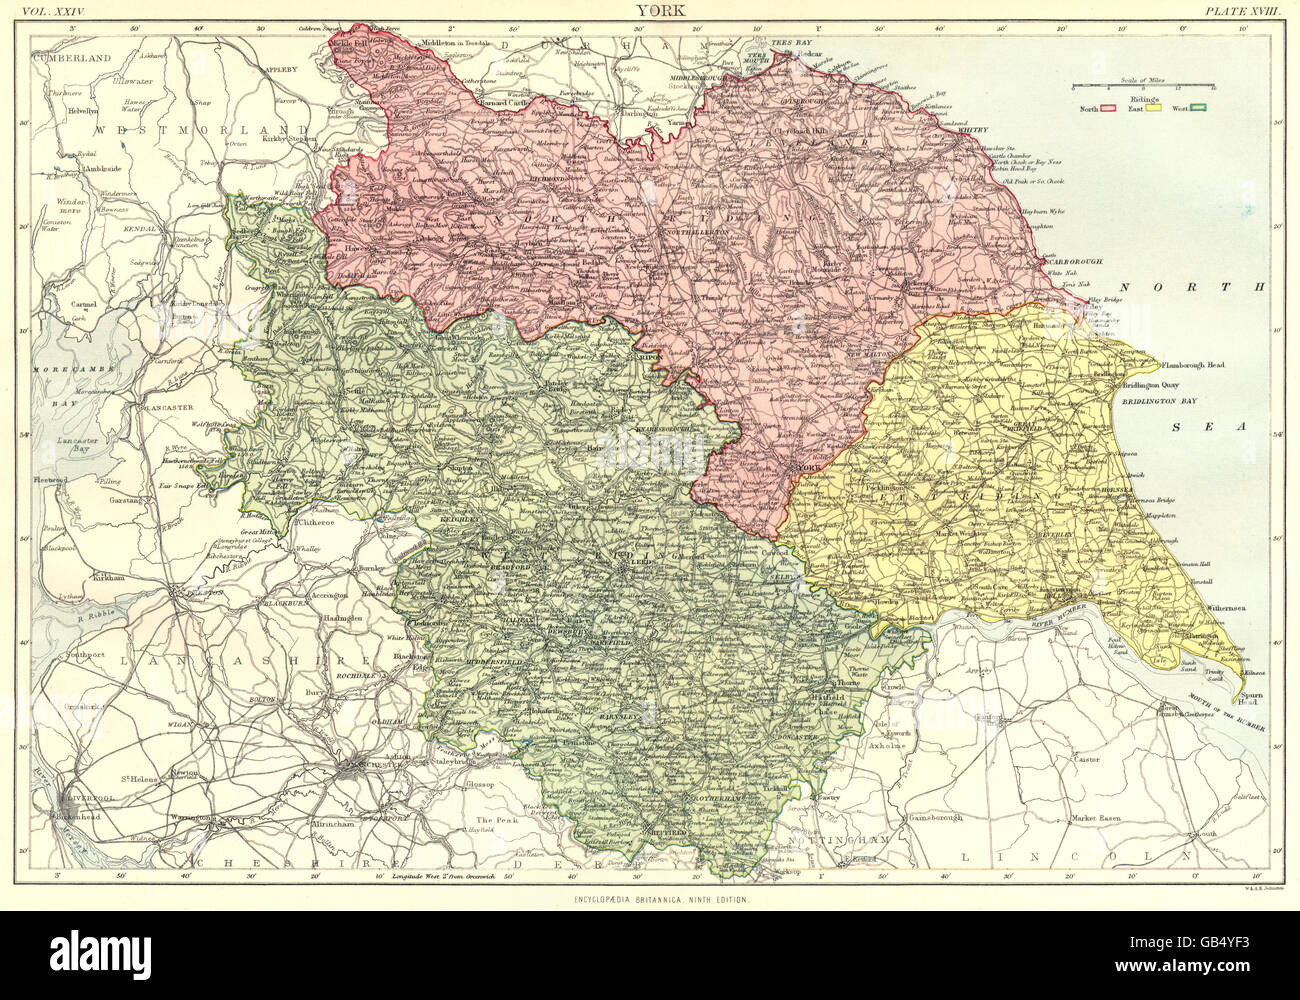 in 1878 ENGLAND /& WALES Britannica 9th edition 1898 map showing counties